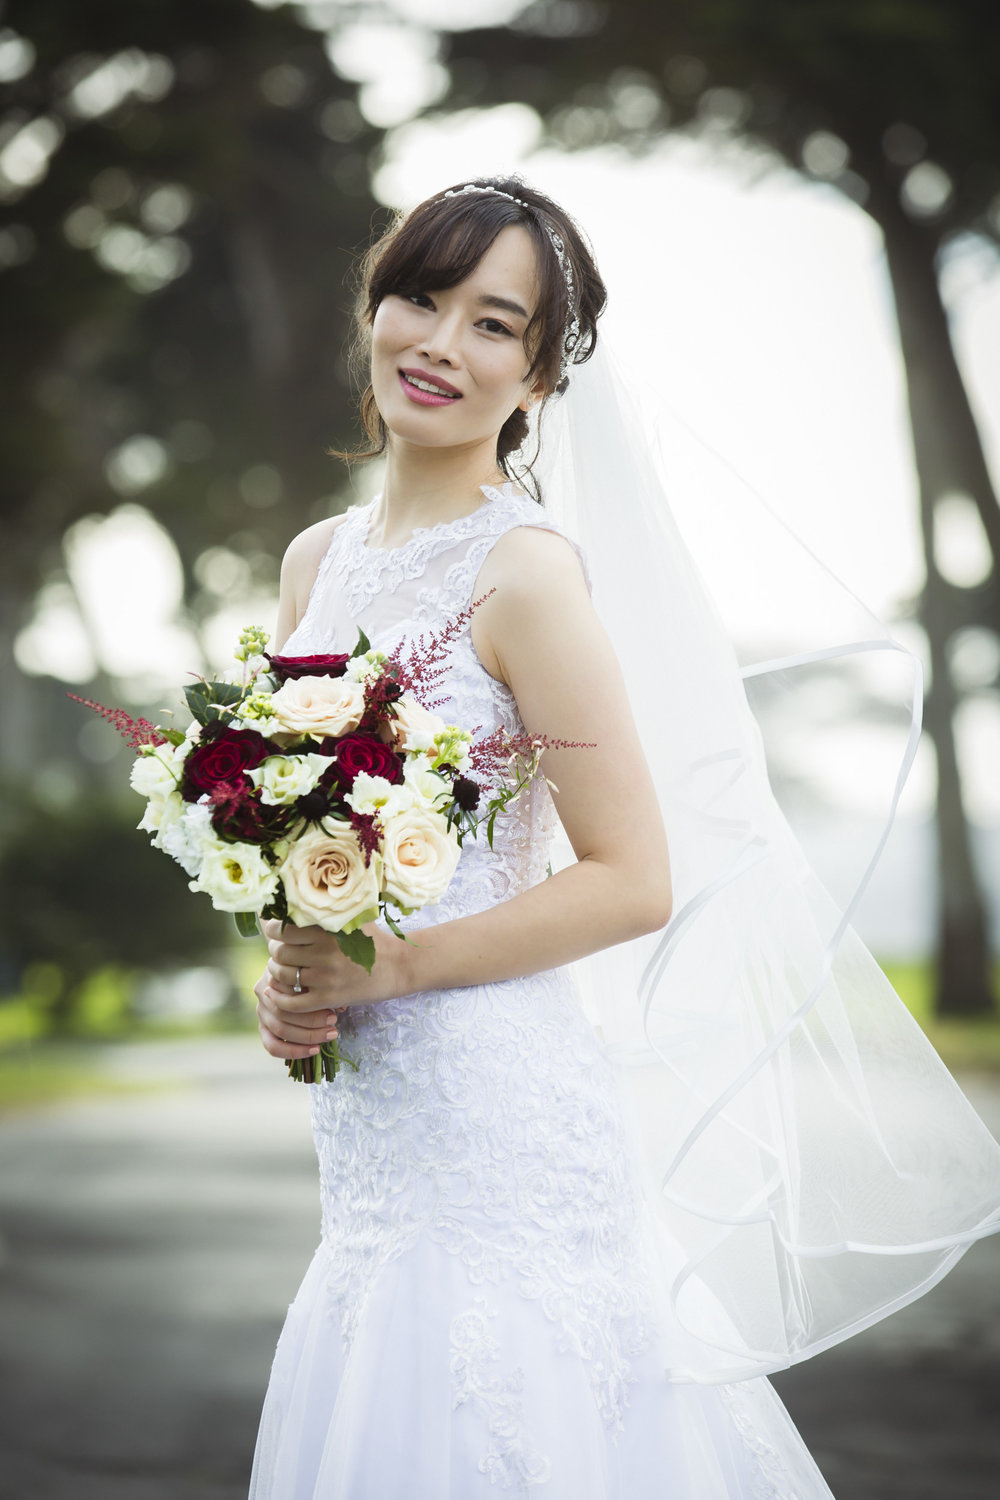 youngseon-bridal-wedding-portrait-3.jpg